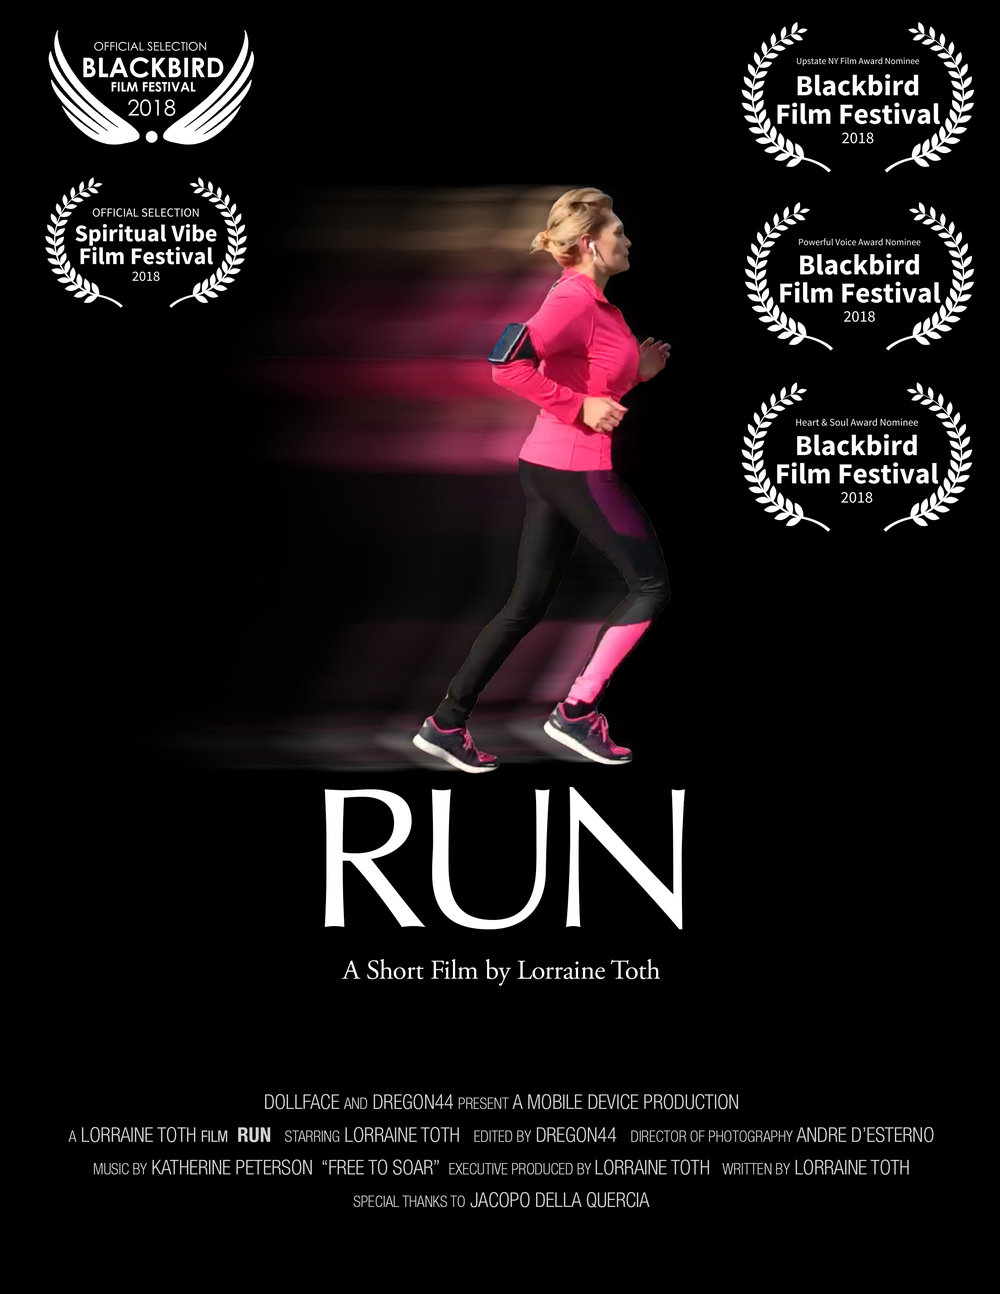 Movie poster for Lorraine's first short film - RUN which she wrote, produced and acted in. It is currently entered into film festivals such as Tribeca. Stay tuned for showing announcements.